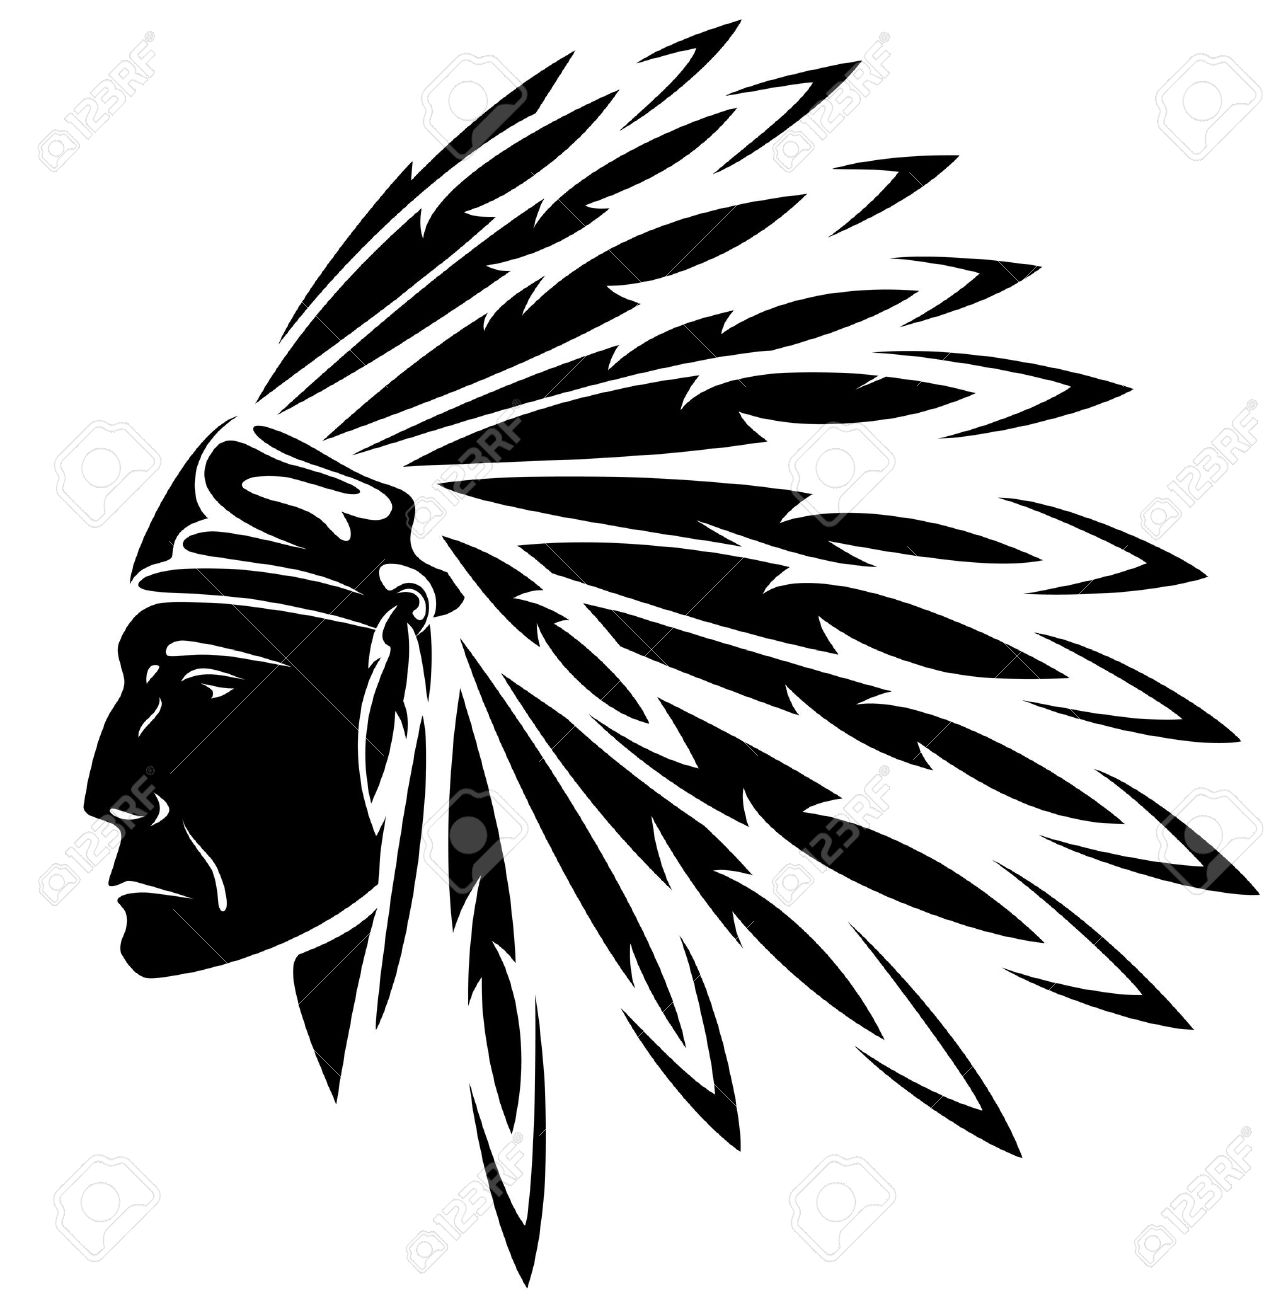 red indian chief black and white illustration royalty free cliparts rh 123rf com  indian headdress clipart black and white